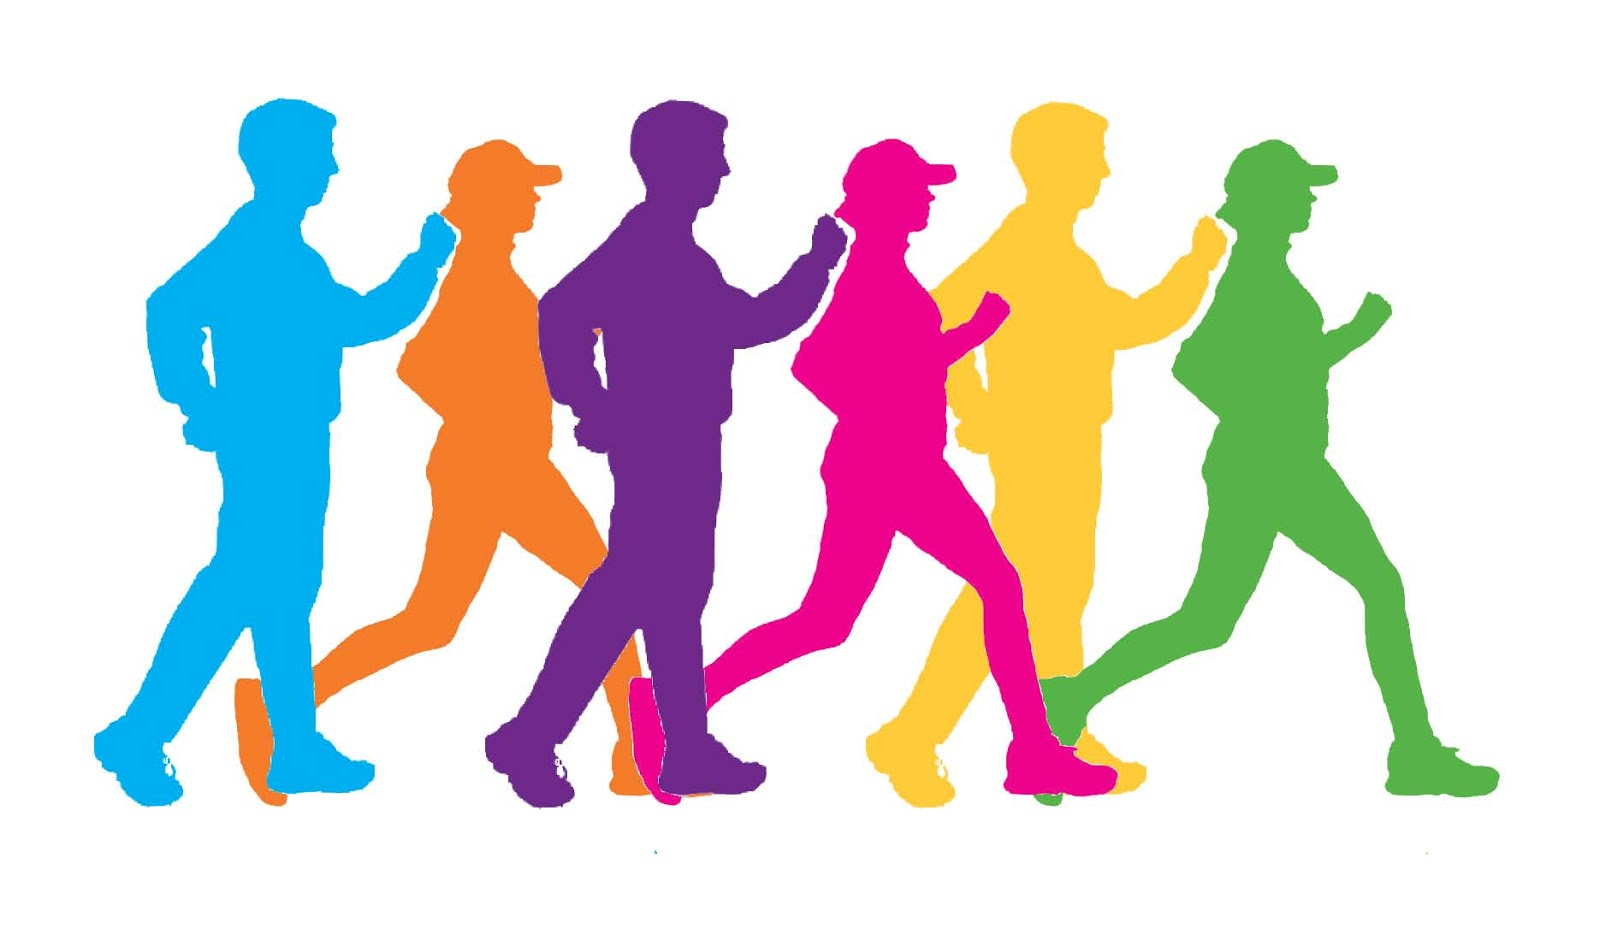 Group of people walking clipart clipart freeuse download Free Community Walk Cliparts, Download Free Clip Art, Free Clip Art ... clipart freeuse download